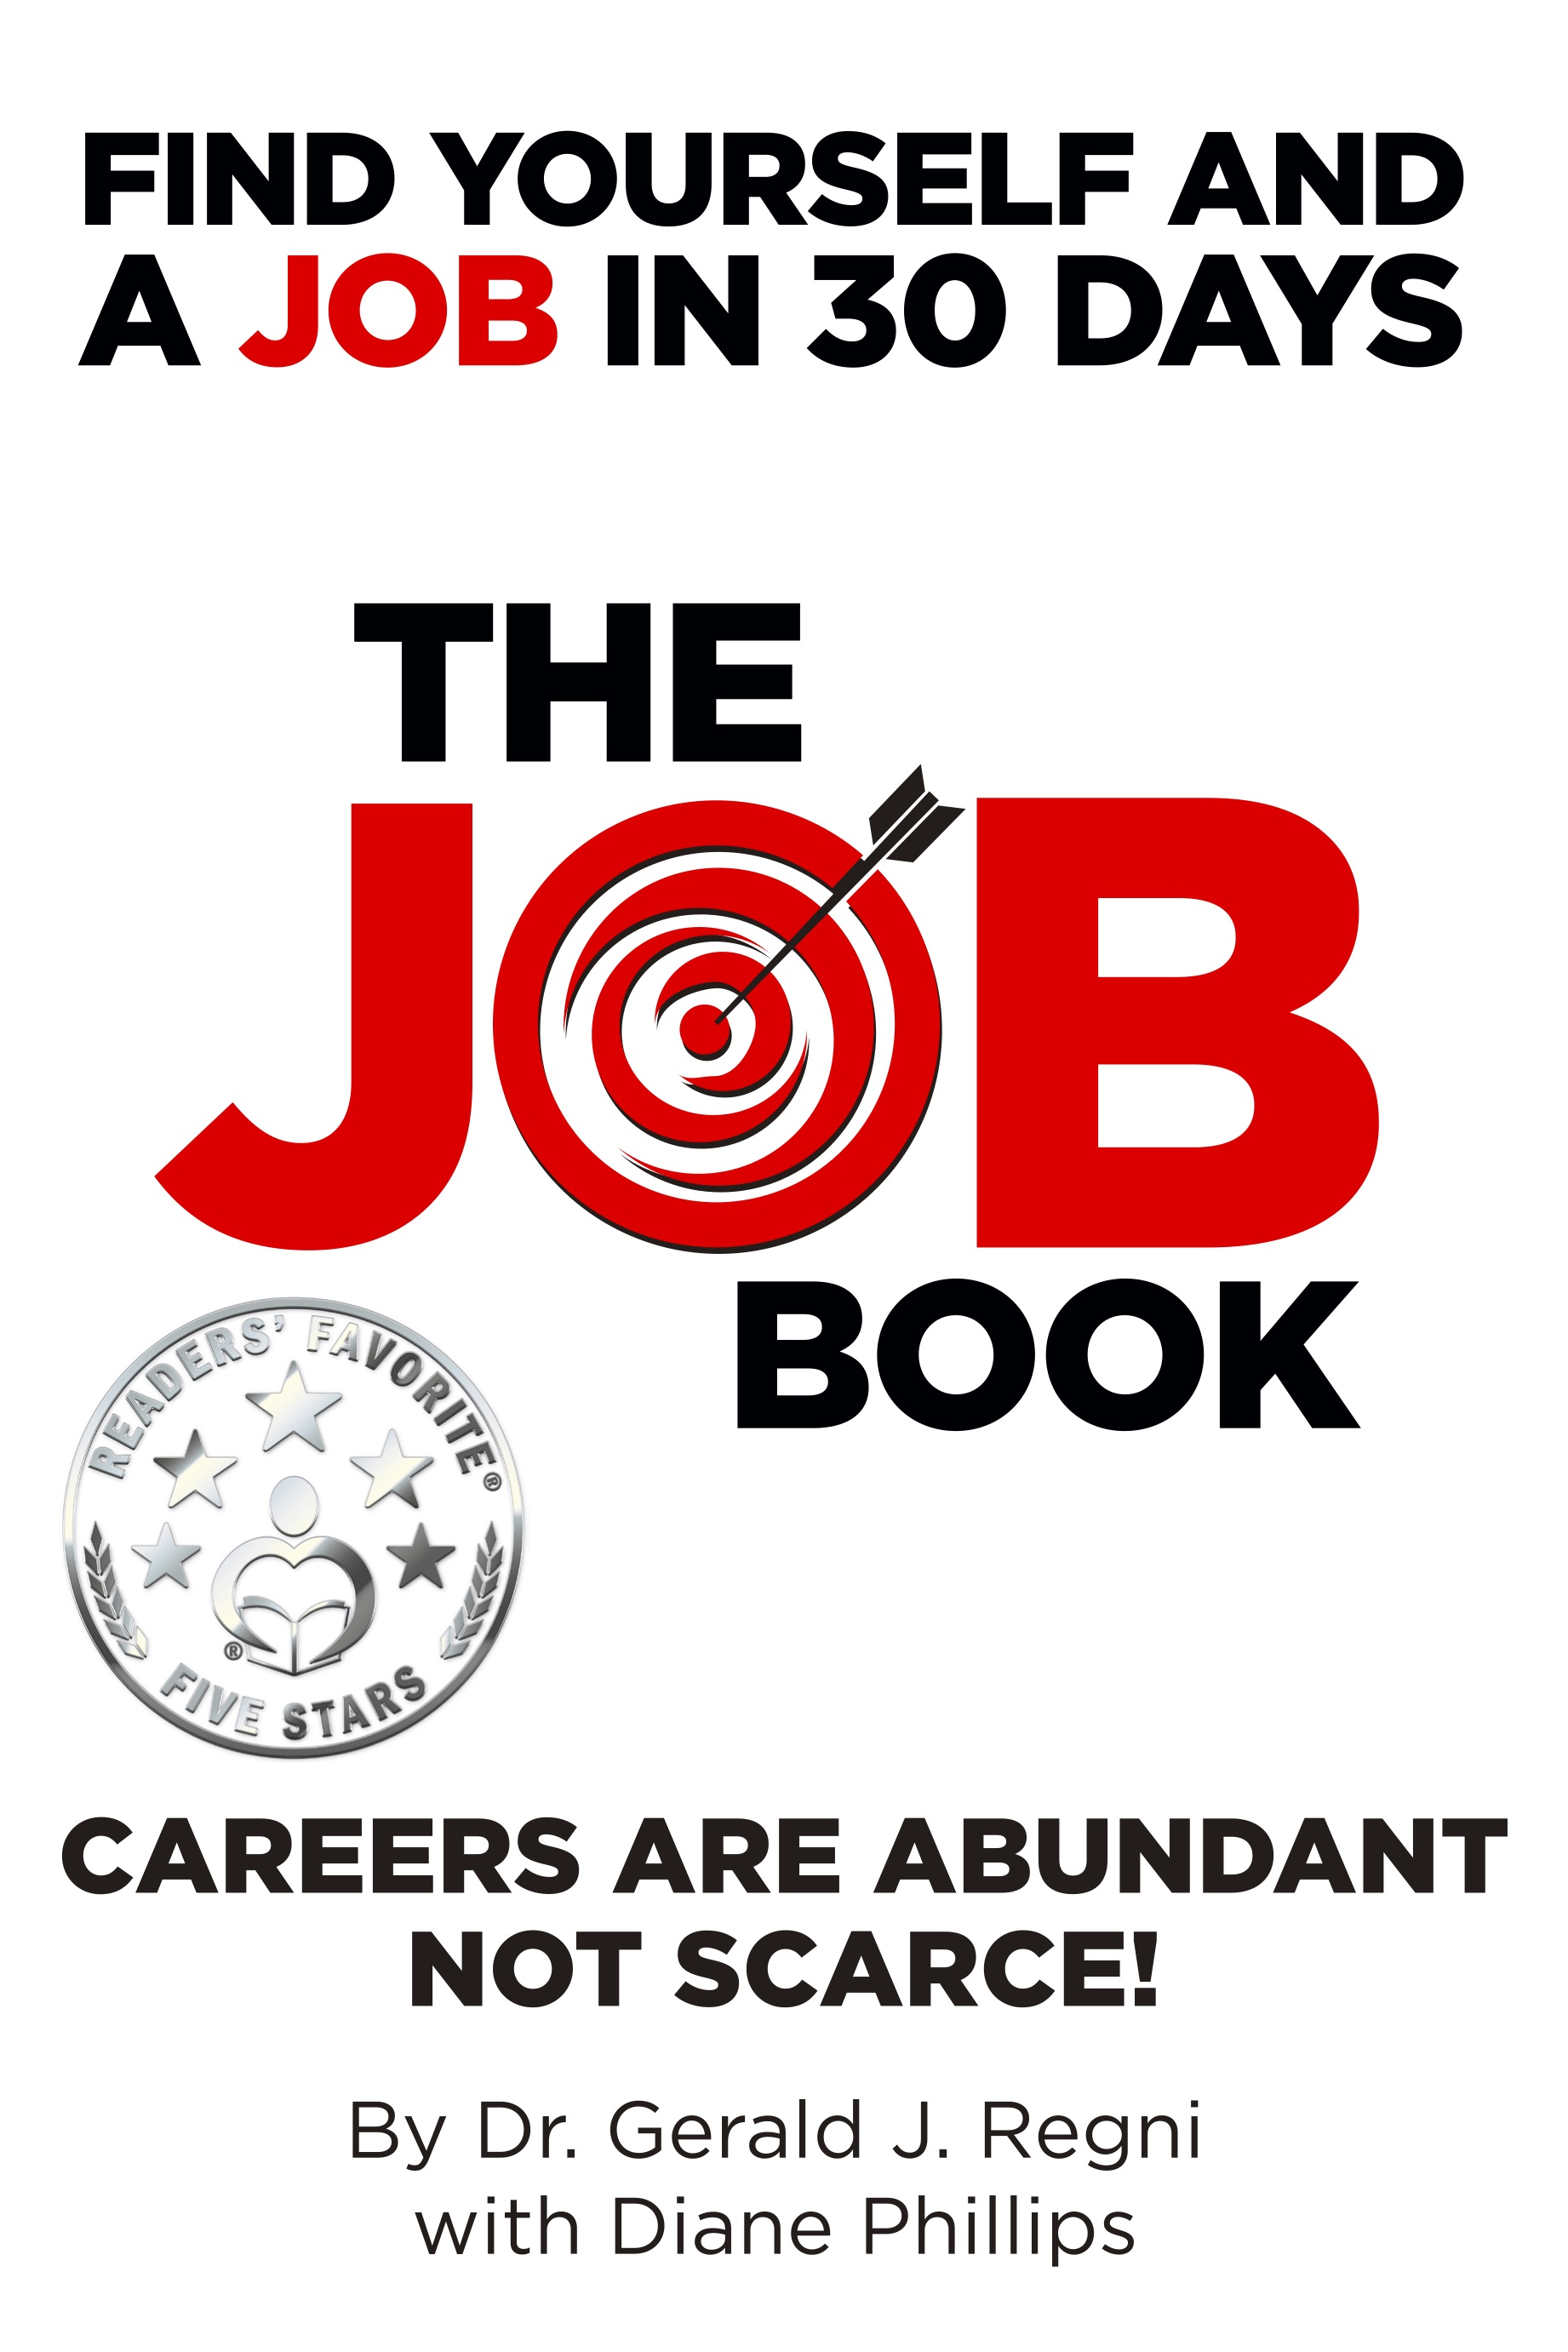 The Job Book Find Yourself And A Job In 30 Days An Ebook By Gerald Regni Diane Phillips